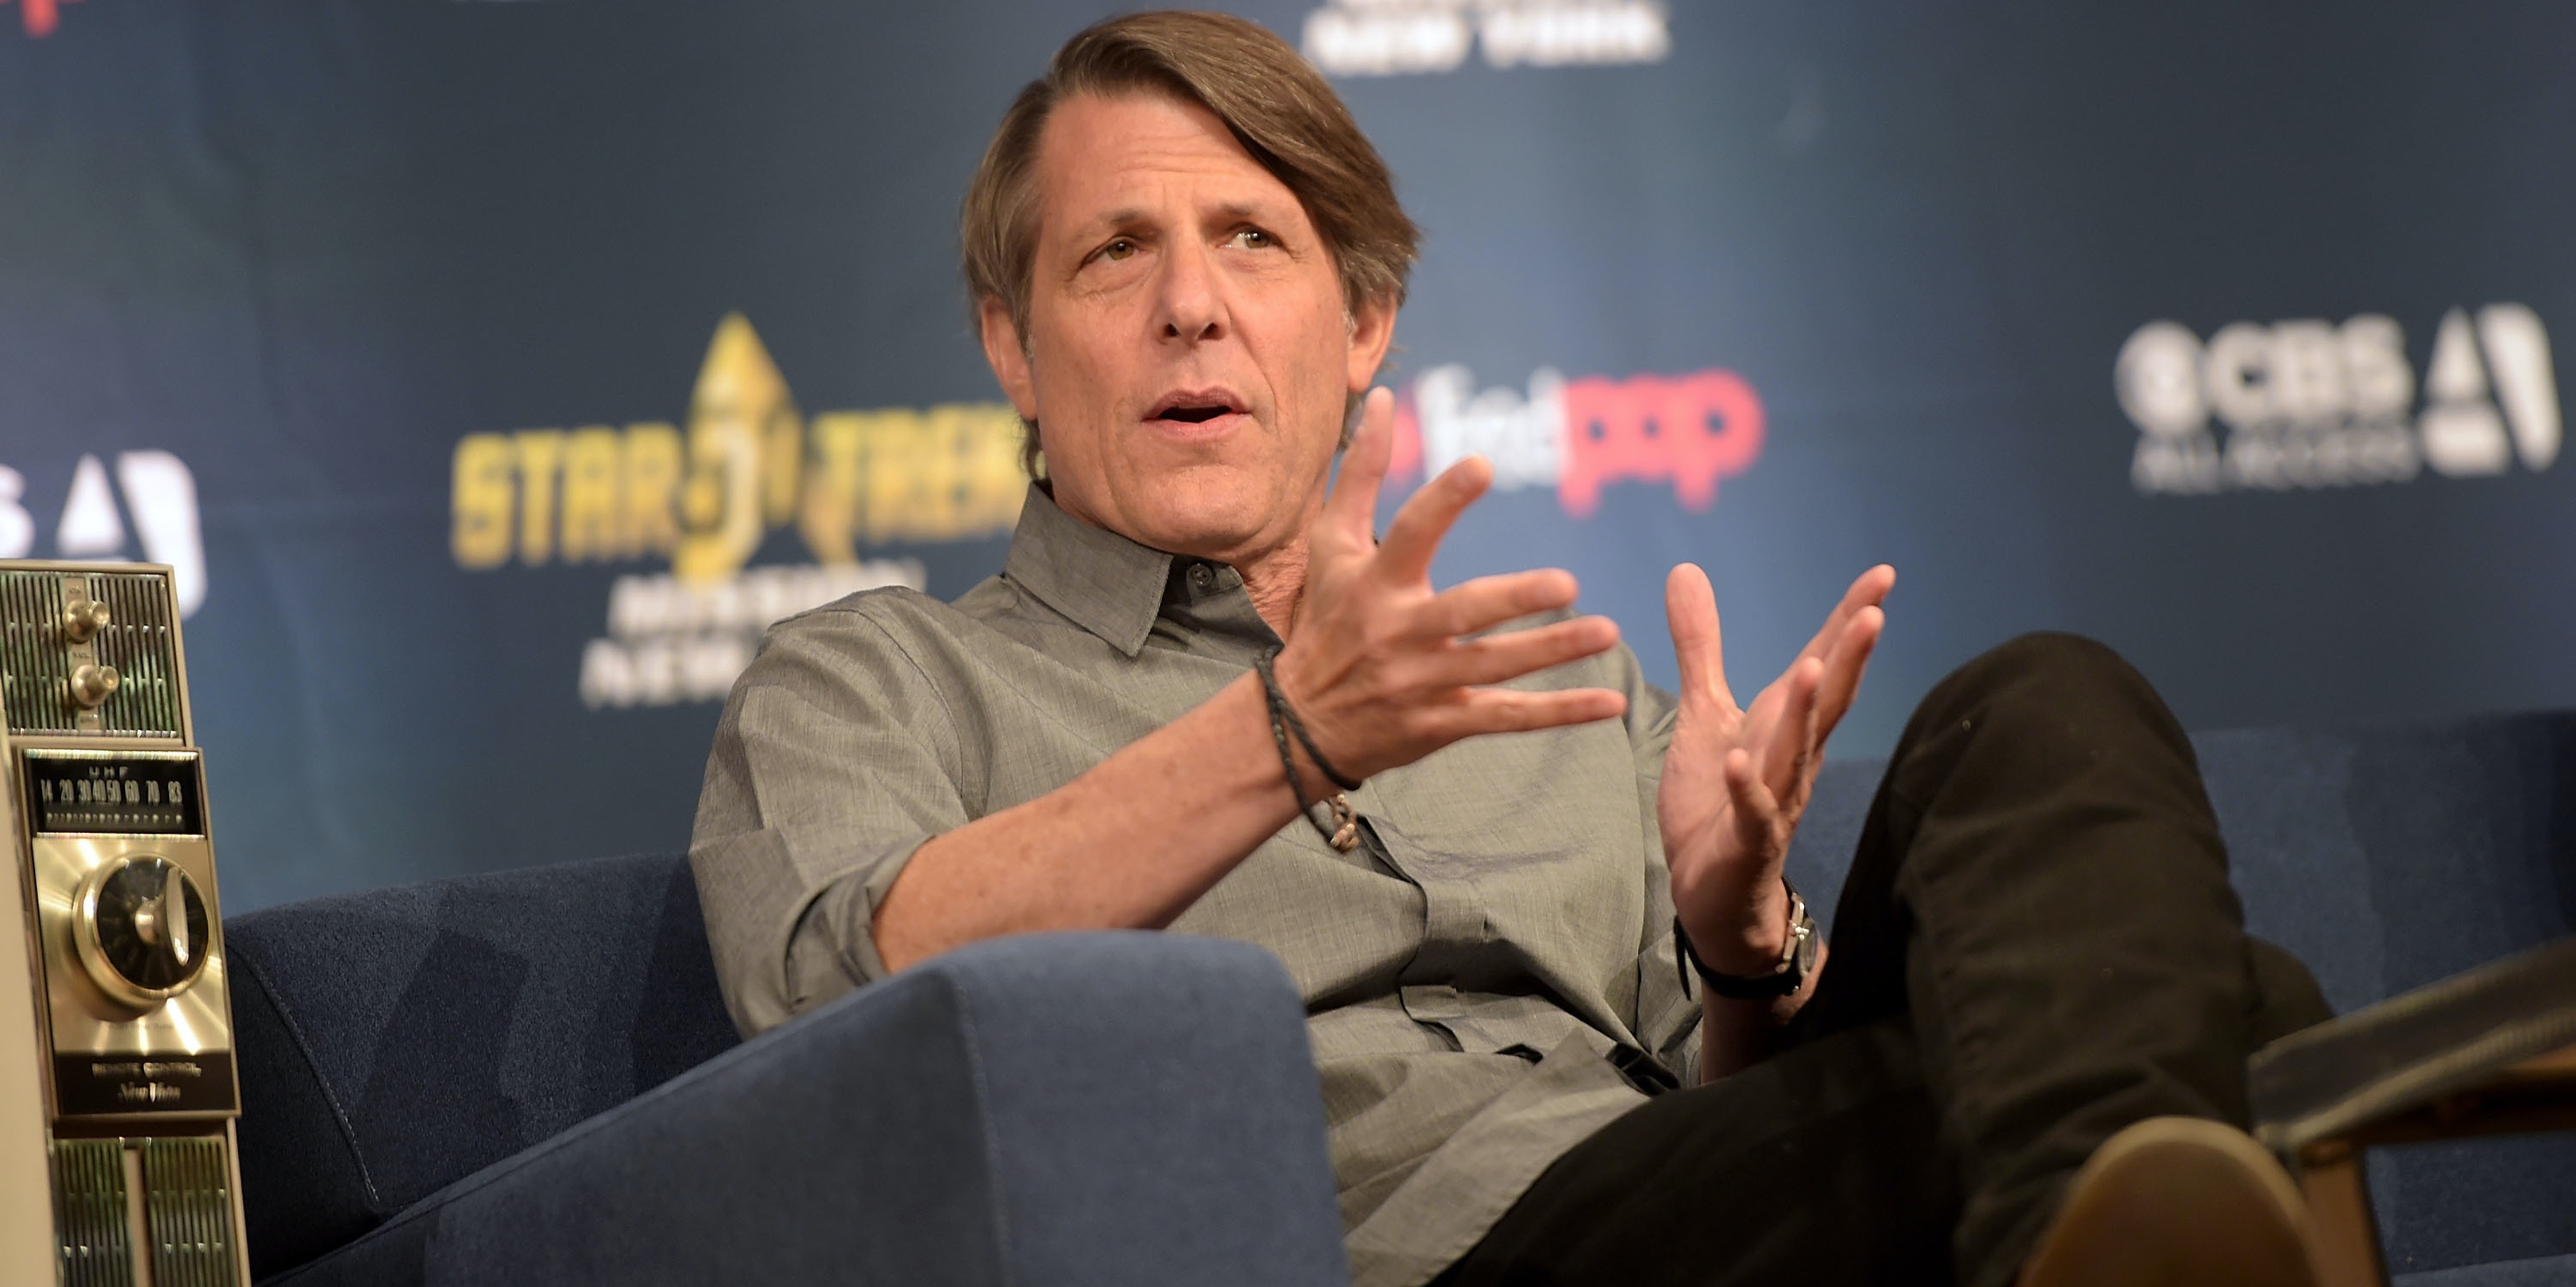 NEW YORK, NY - SEPTEMBER 03:  Director Adam Nimoy speaks during the Star Trek: Mission New York event at Javits Center on September 3, 2016 in New York City.  (Photo by Jason Kempin/Getty Images)